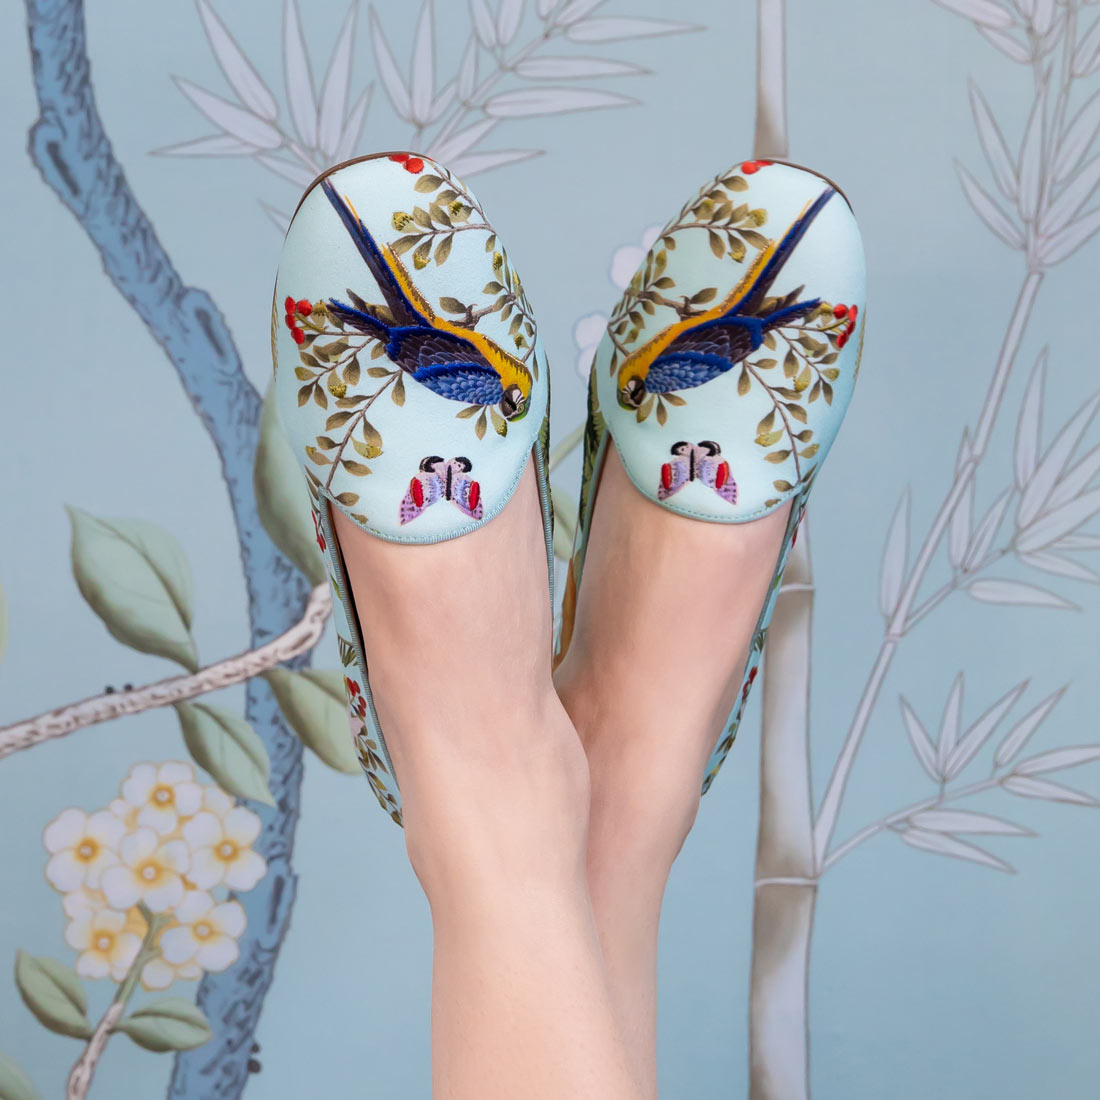 de Gournay Shoes